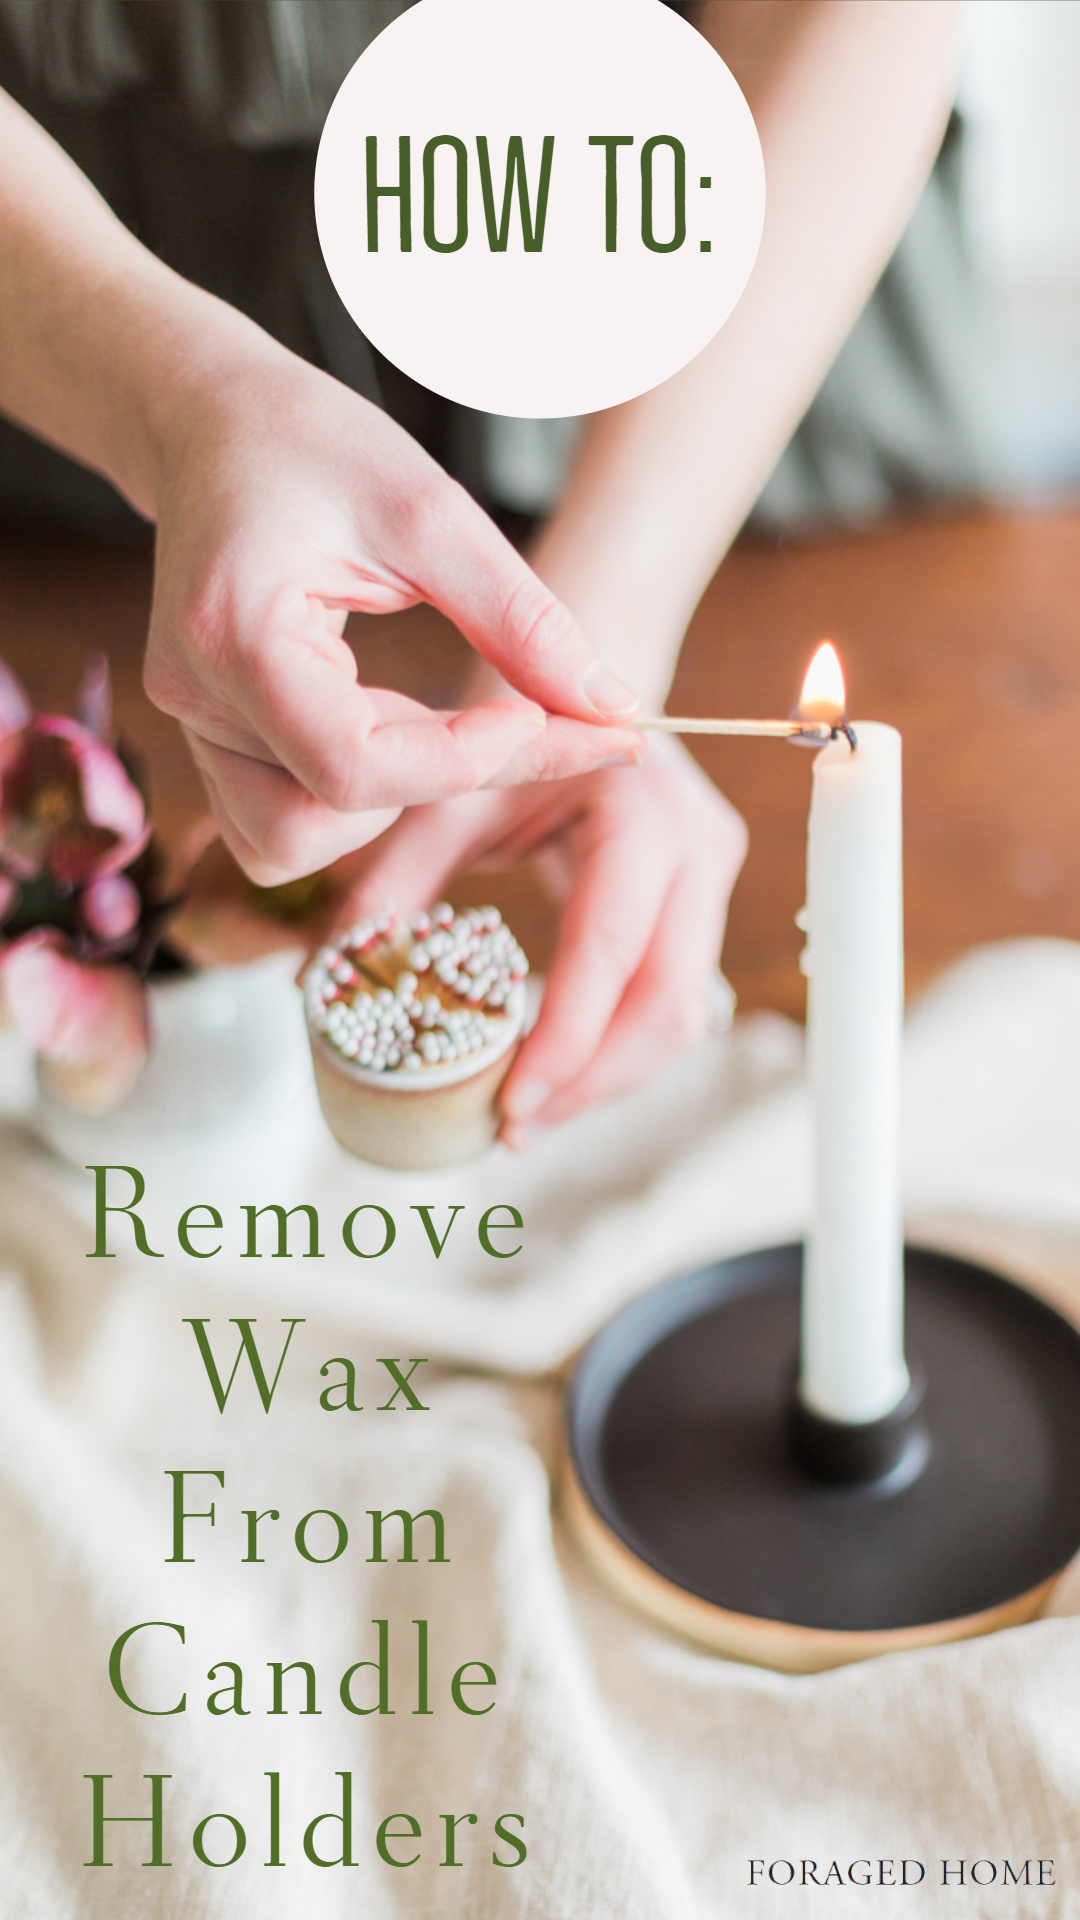 how to remove wax from candle holders easily from Foraged Home